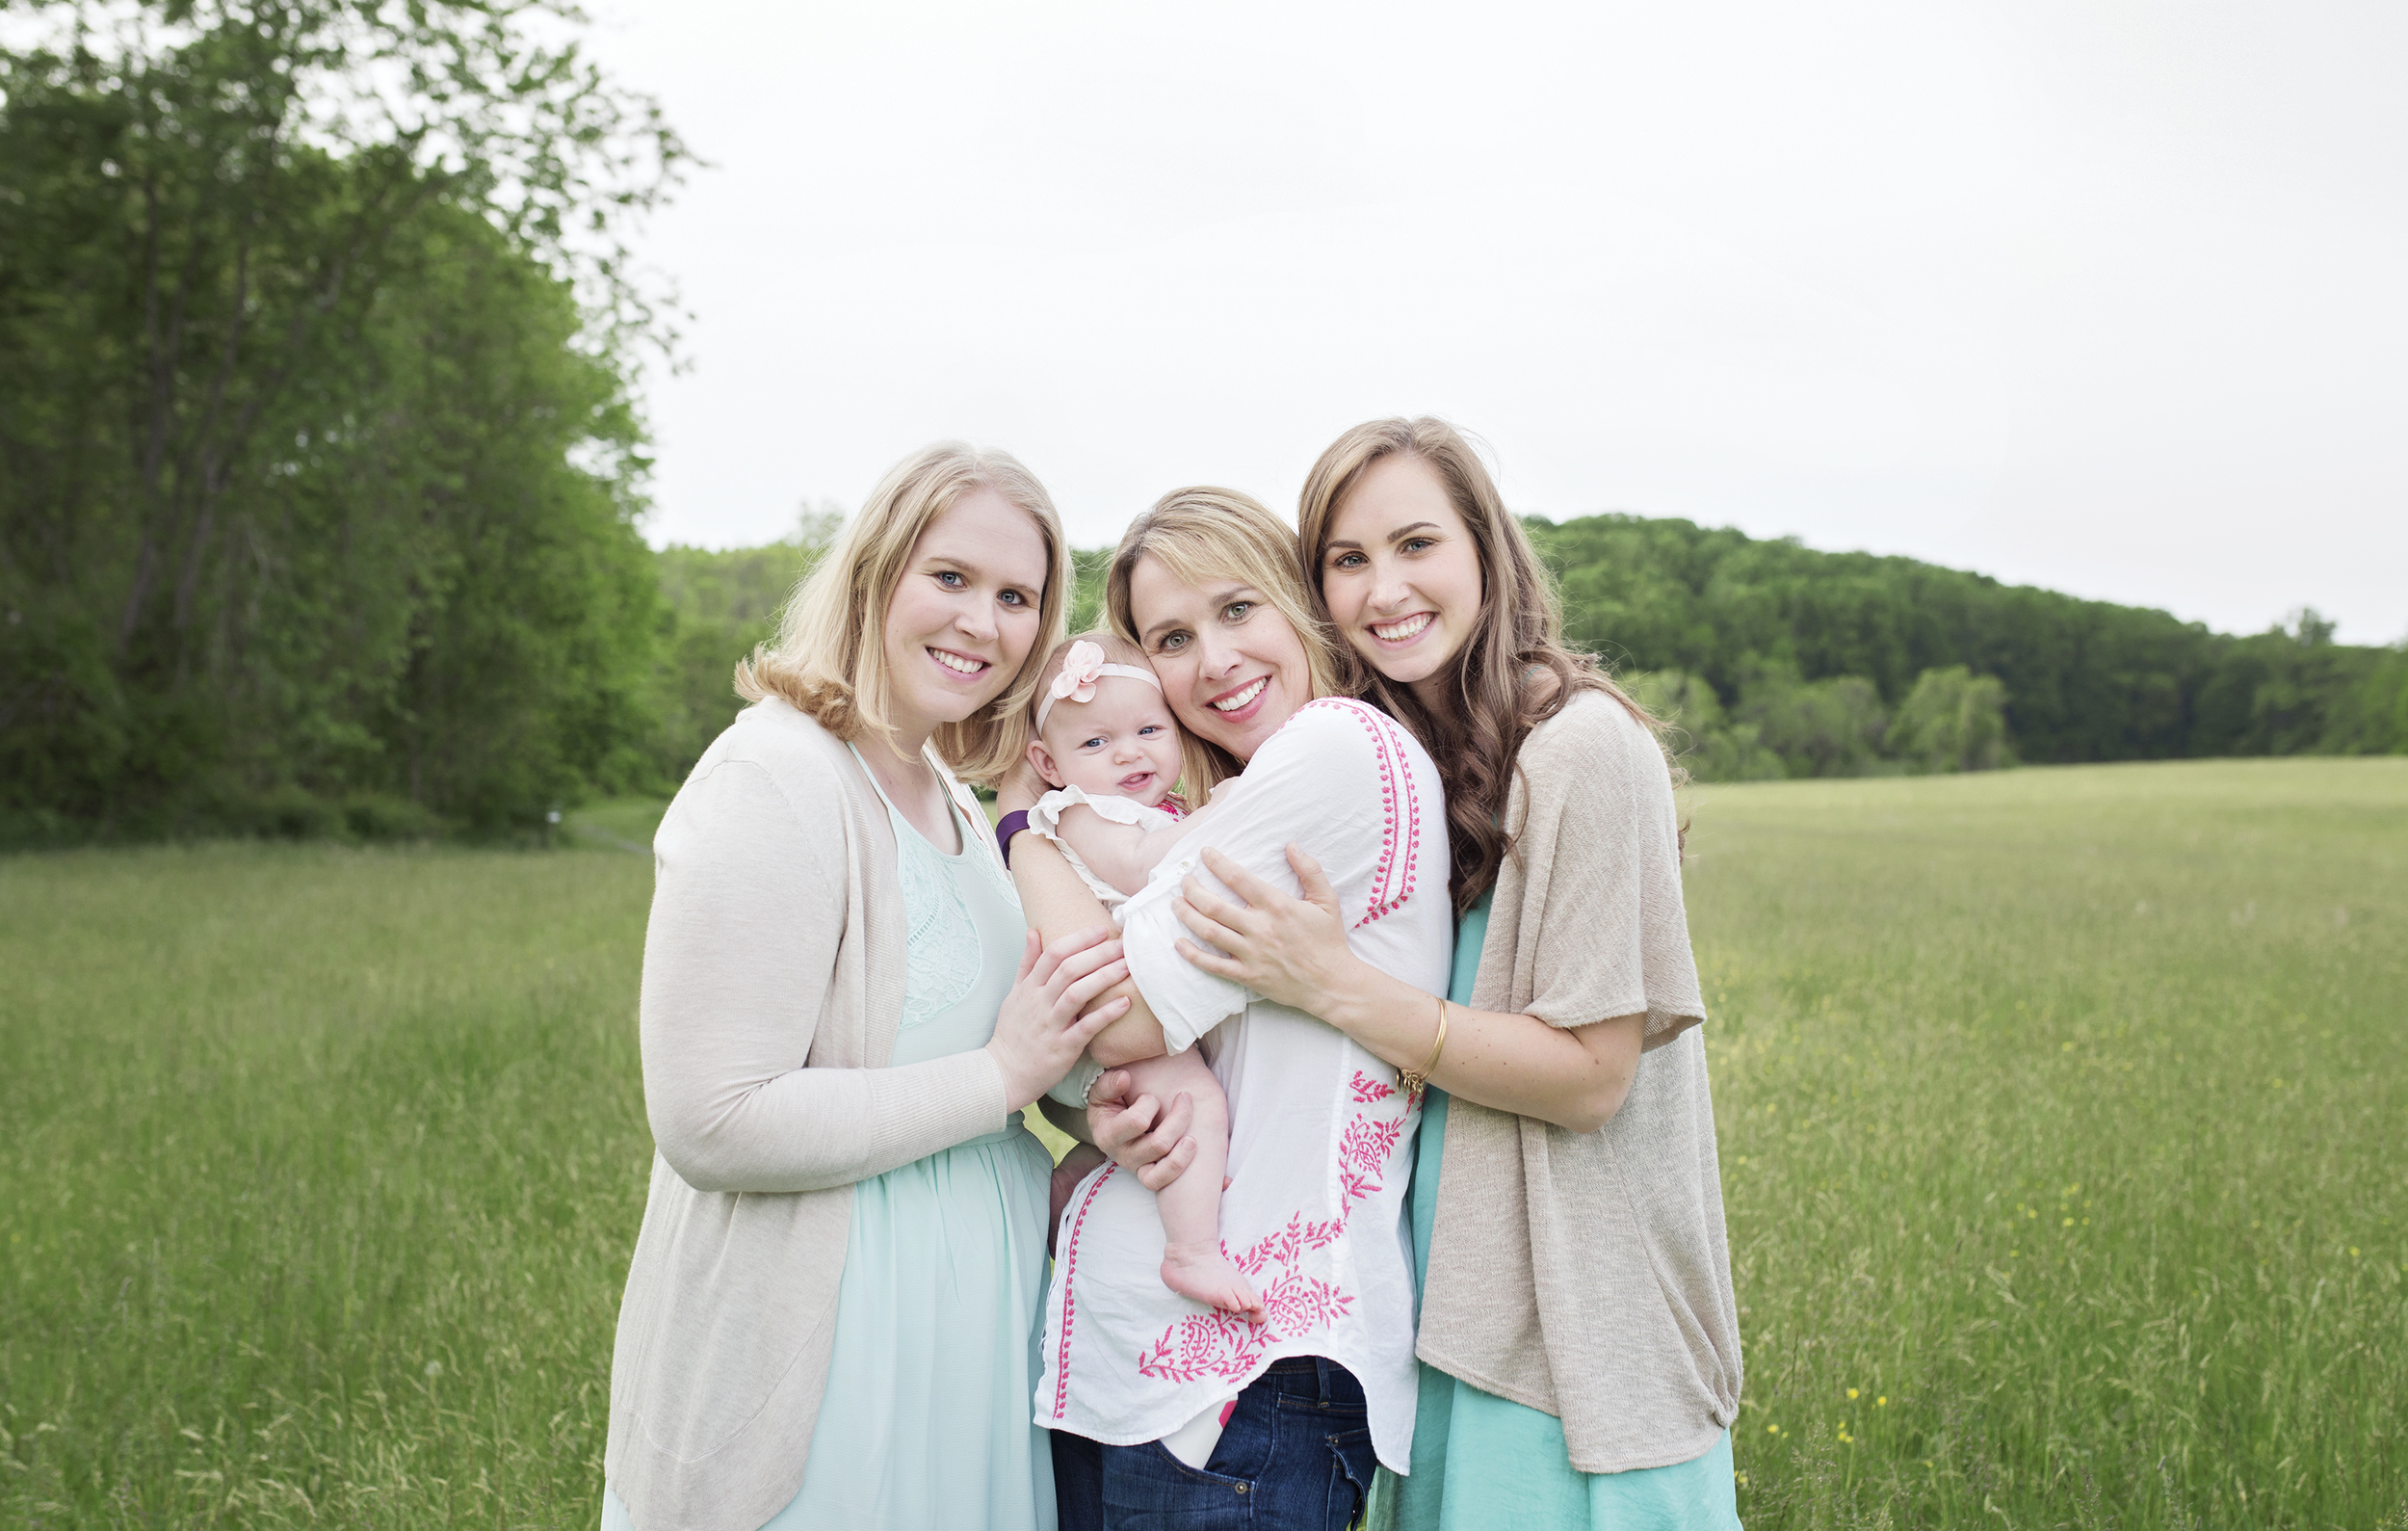 Family Photo | Amber Corryn Photography